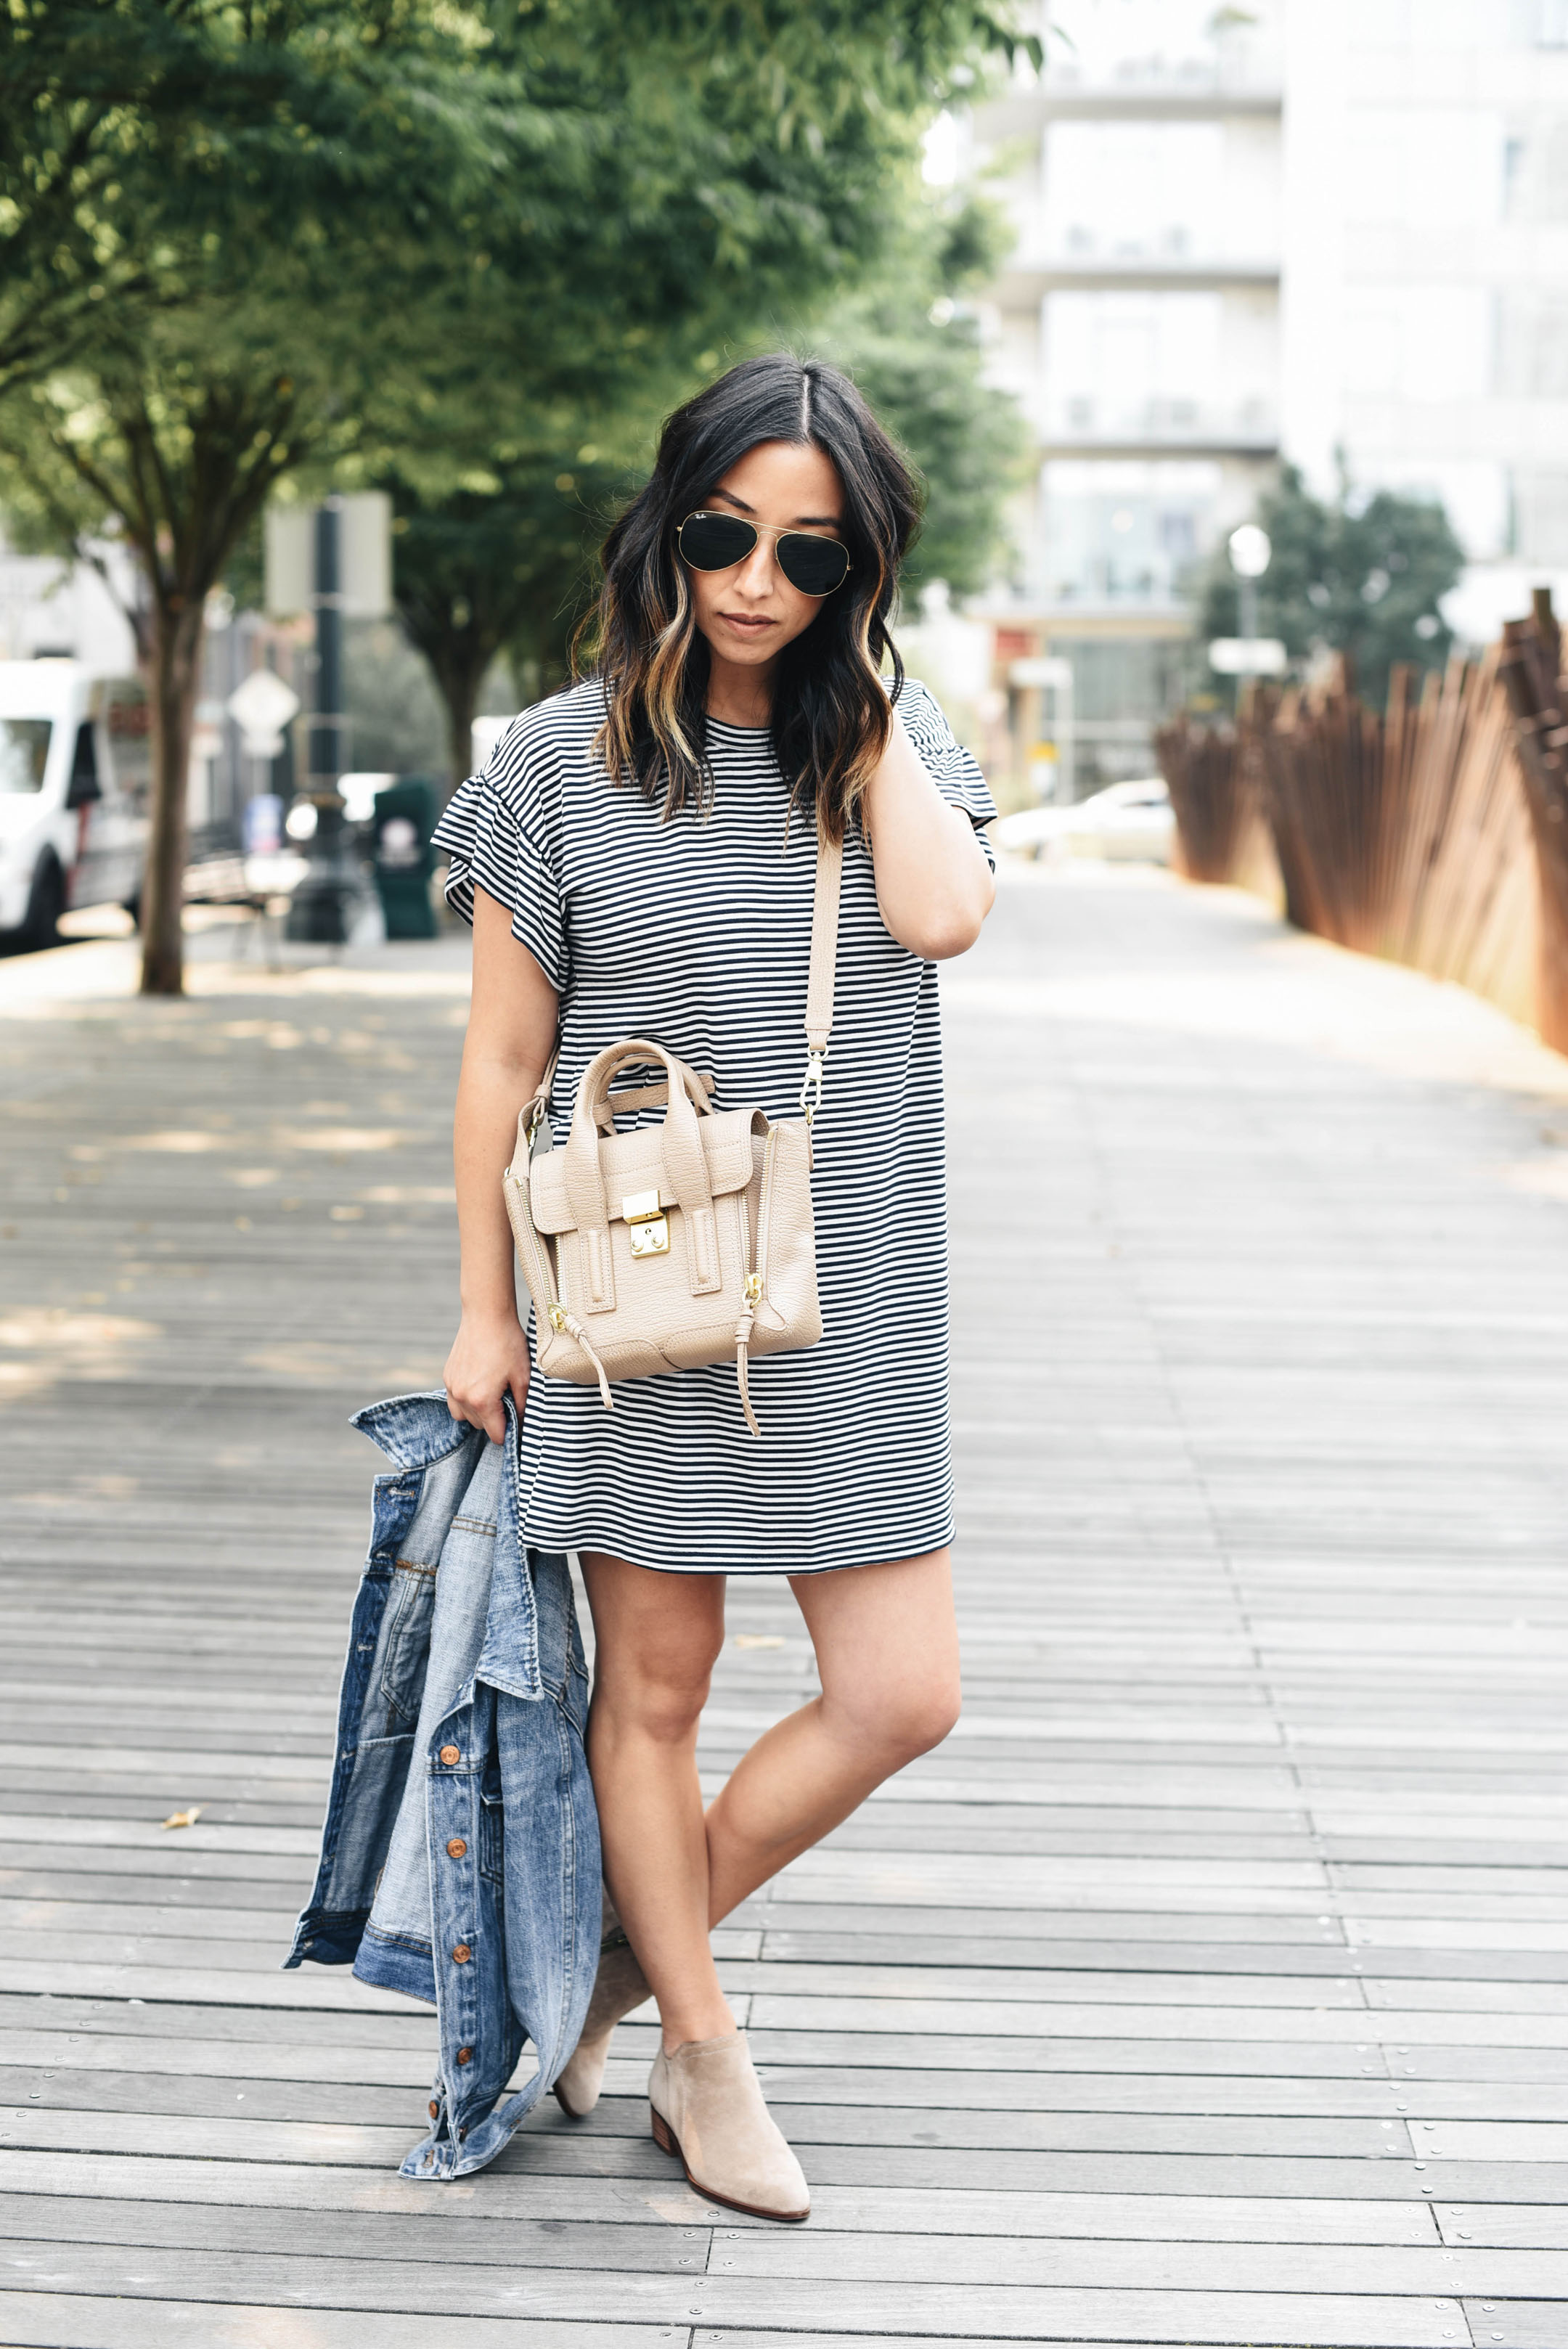 Abercrombie and Fitch petite dresses